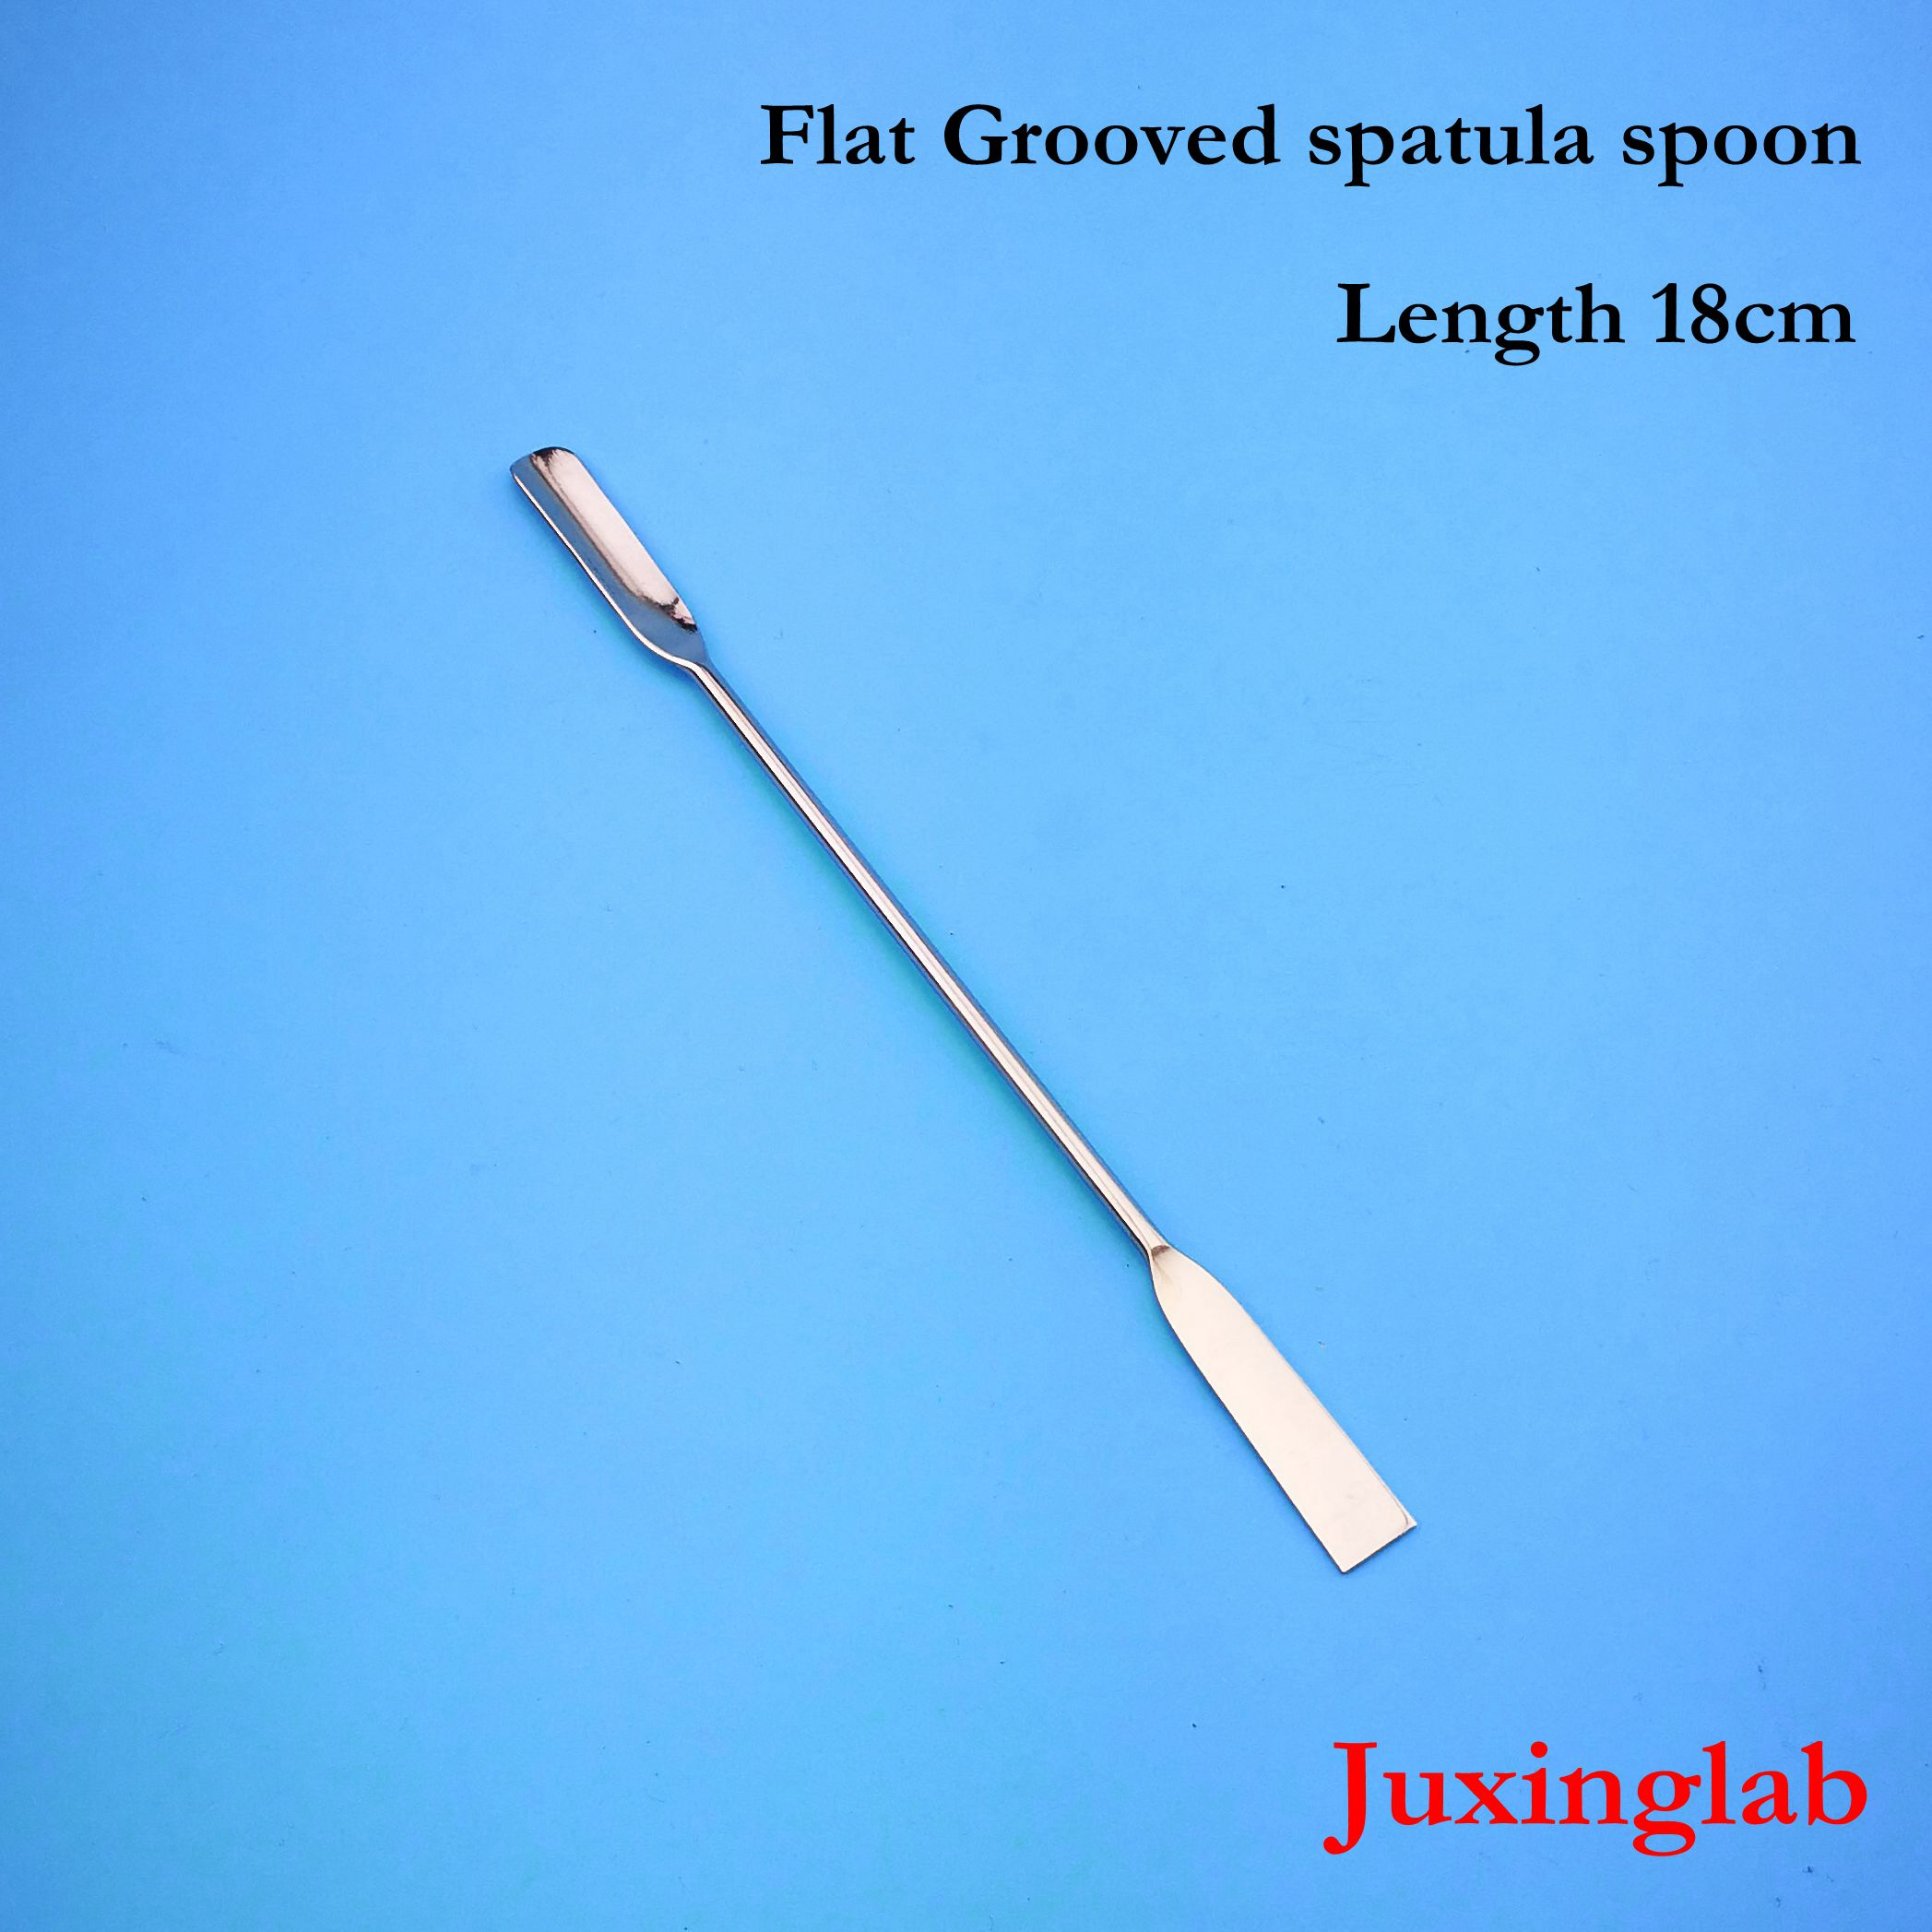 Laboratory Stainless Steel Flat Grooved Spatula Spoon Length 180mm Spatulas Spoon Flat 18cm Length